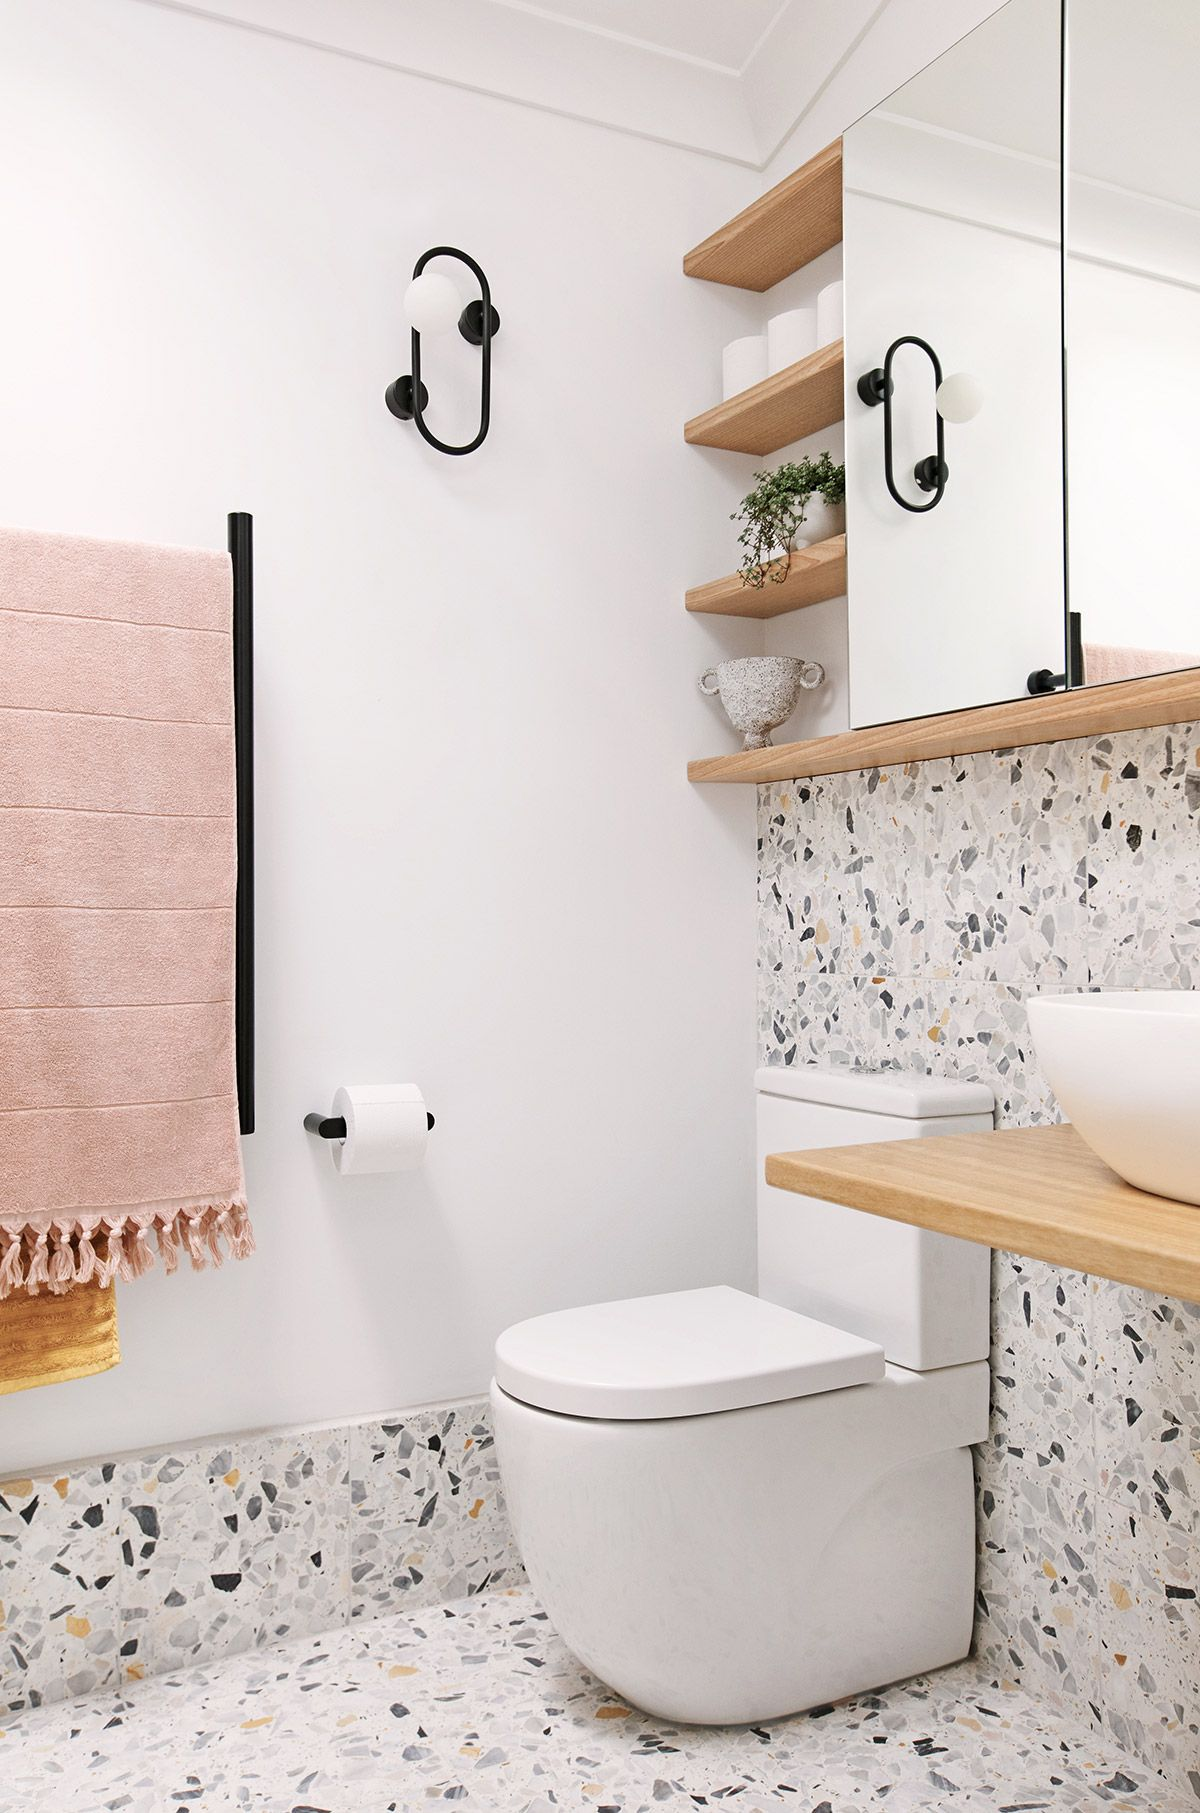 My Bathroom Renovation It S All About Terrazzo And Moroccan Tiles We Are Scout In 2020 Bathroom Interior Bathroom Renovation Bathroom Design